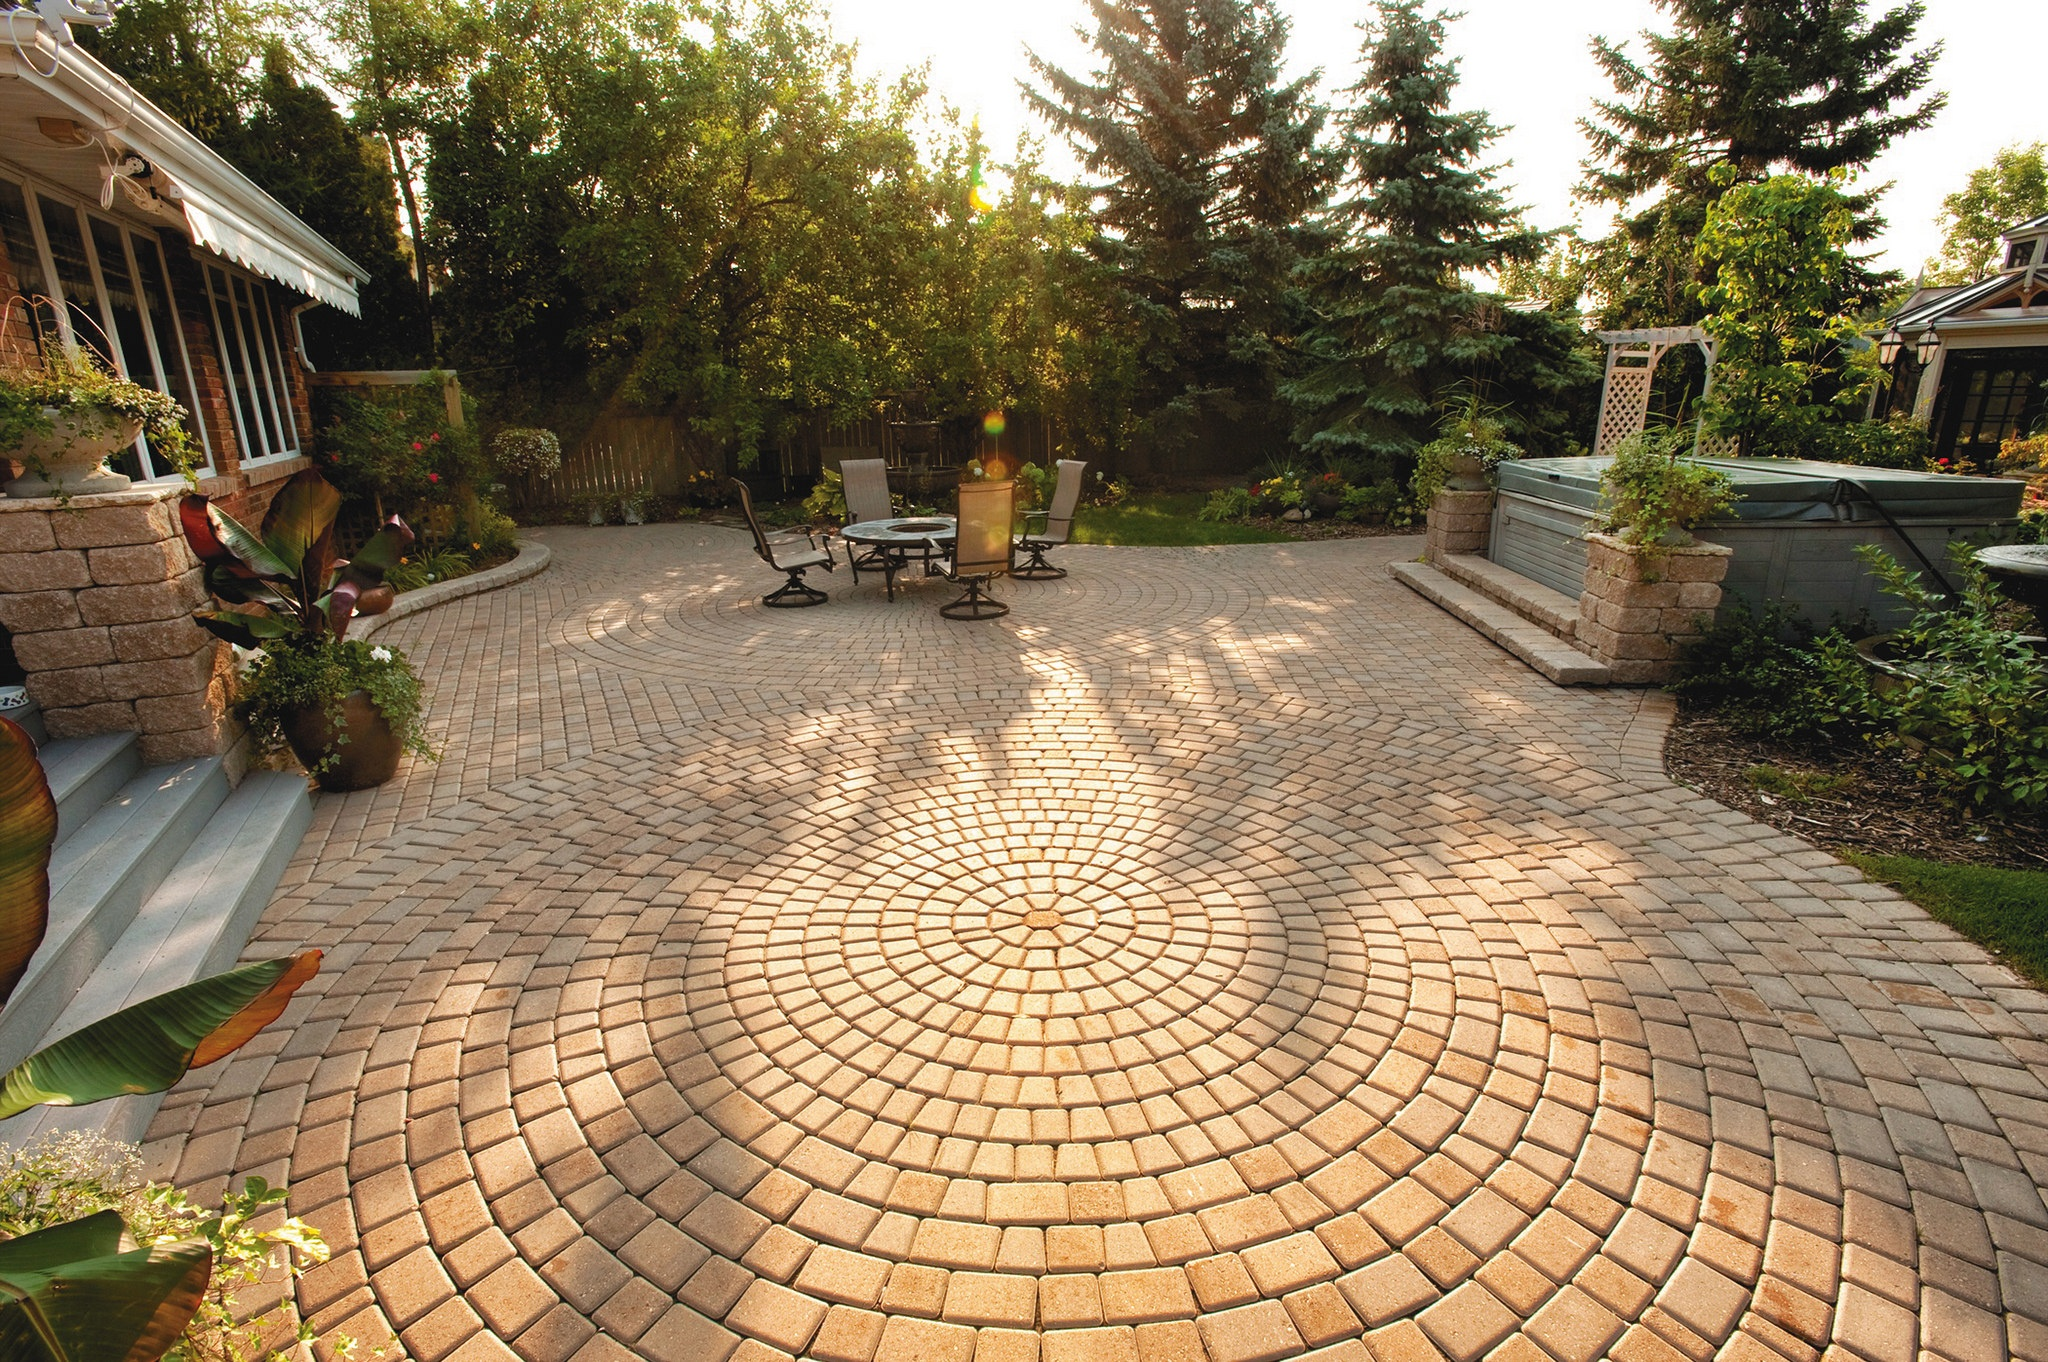 How Much Does It Cost to Install Paver Stones 5 Key Considerations